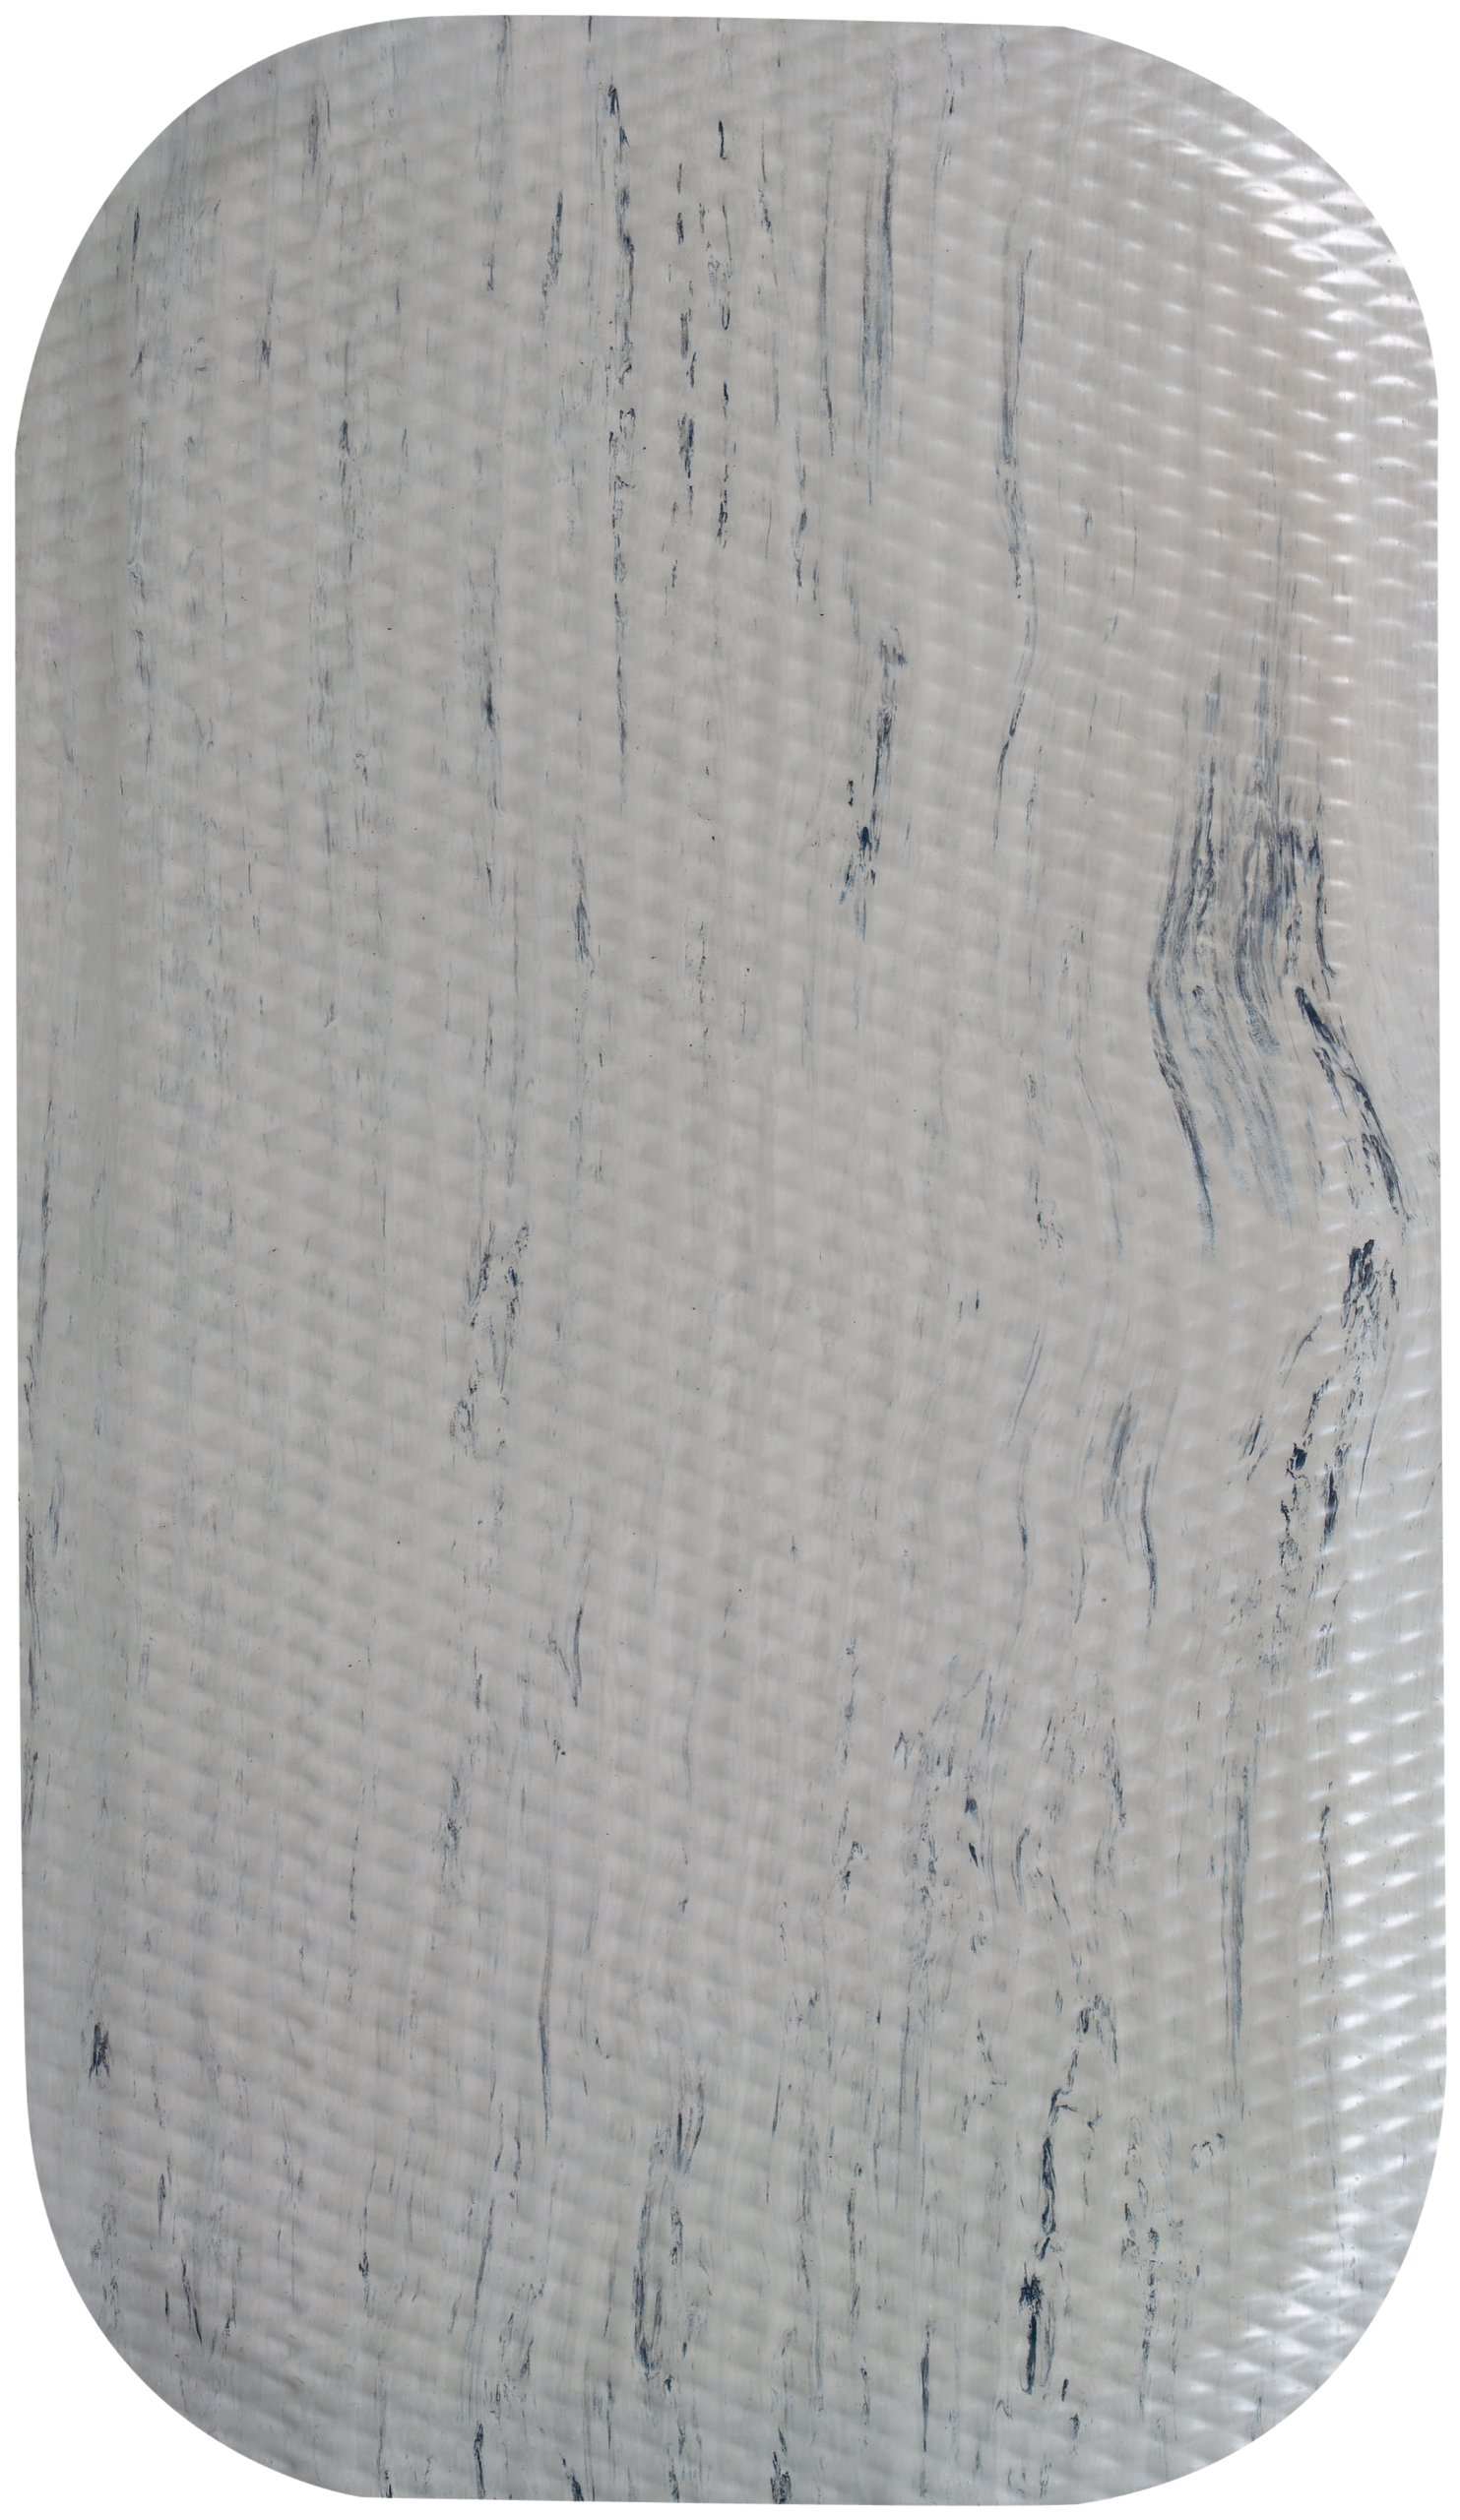 M+A Matting 449 Granite Dusk Nitrile Rubber Hog Heaven Anti-Fatigue Mat, Marble Top, 3' Length x 2' Width x 7/8'' Thick, For Indoor